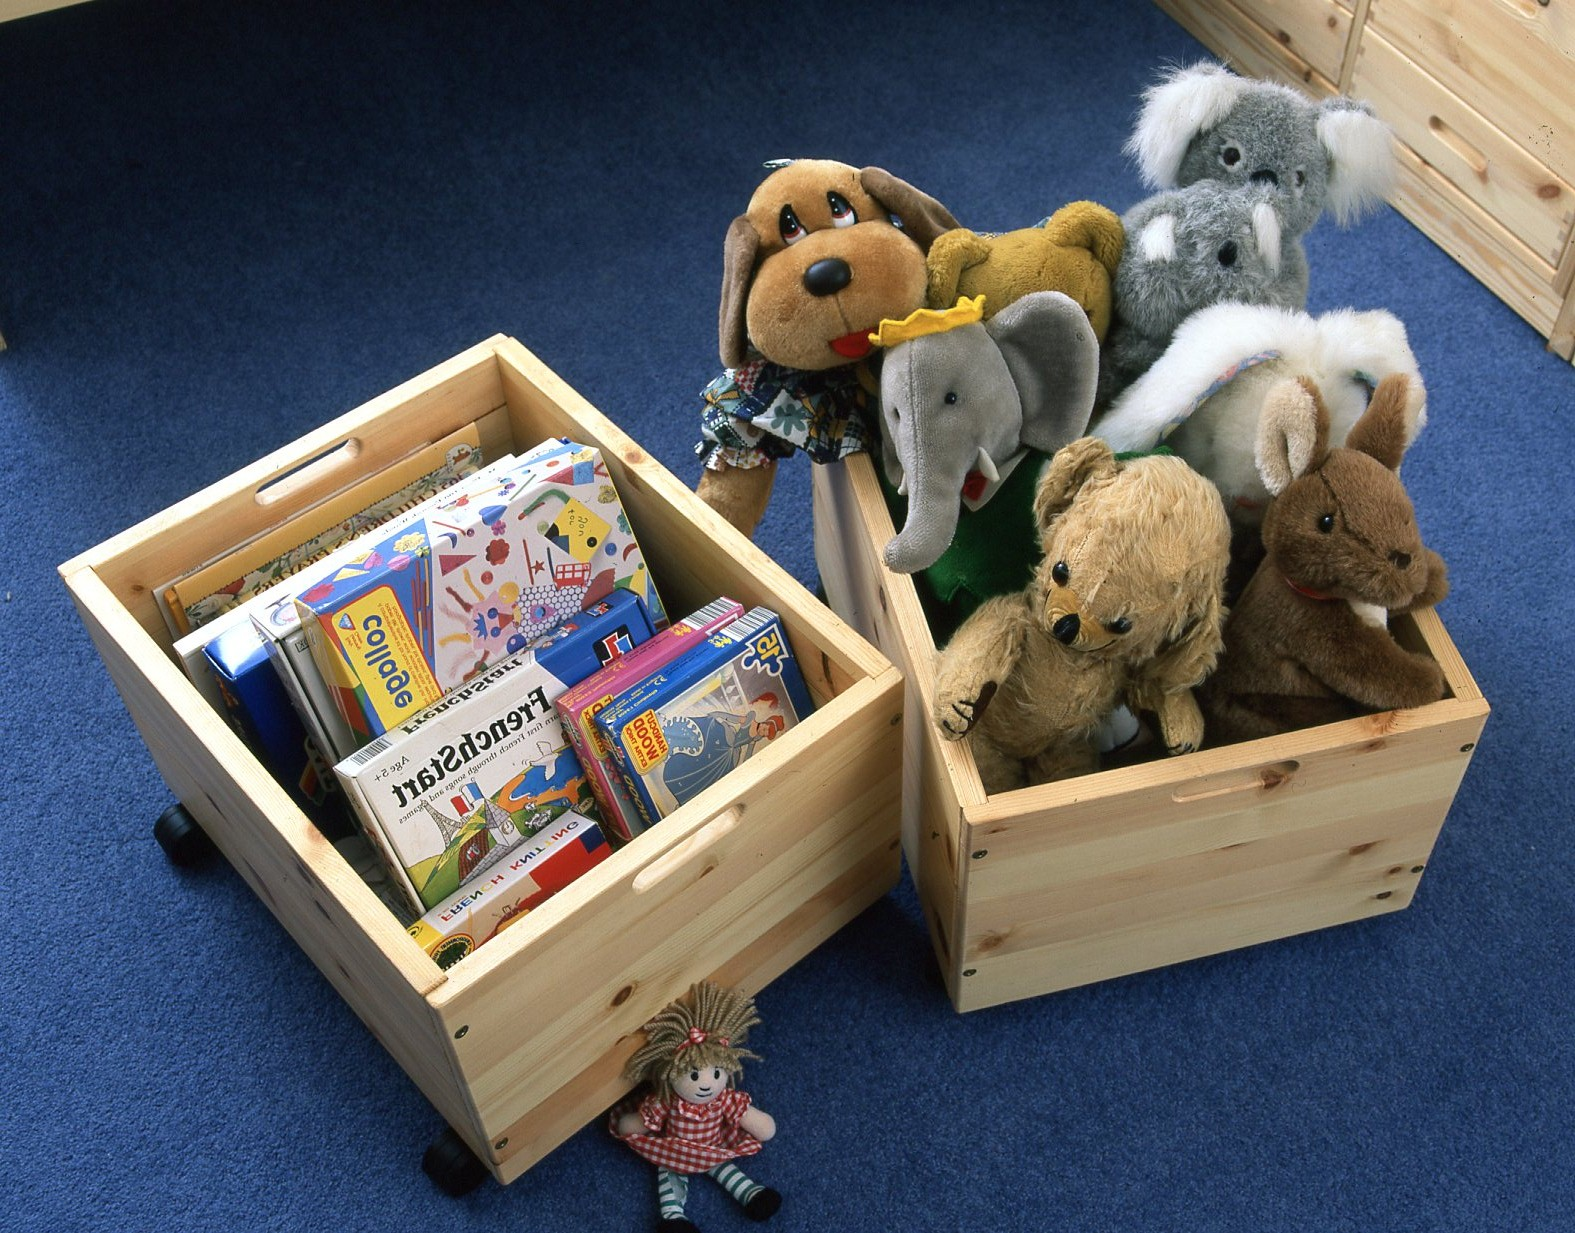 Three Ways To Make Use Of Wooden Toy Boxes - Shelfstore